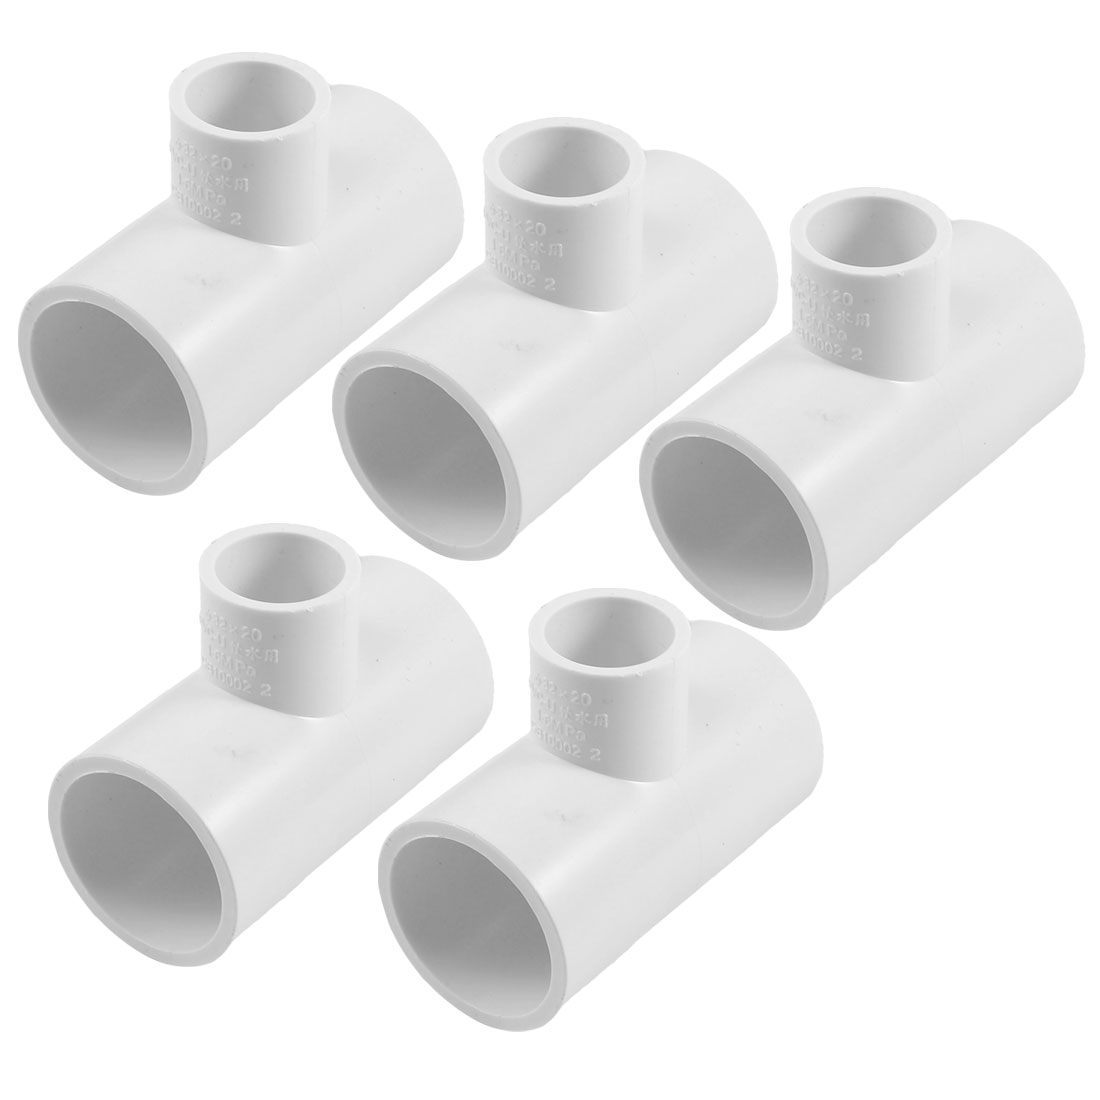 32mm to 20mm White Three Way PVC Pipe Fittings Tee Slip Connectors 5 Pieces